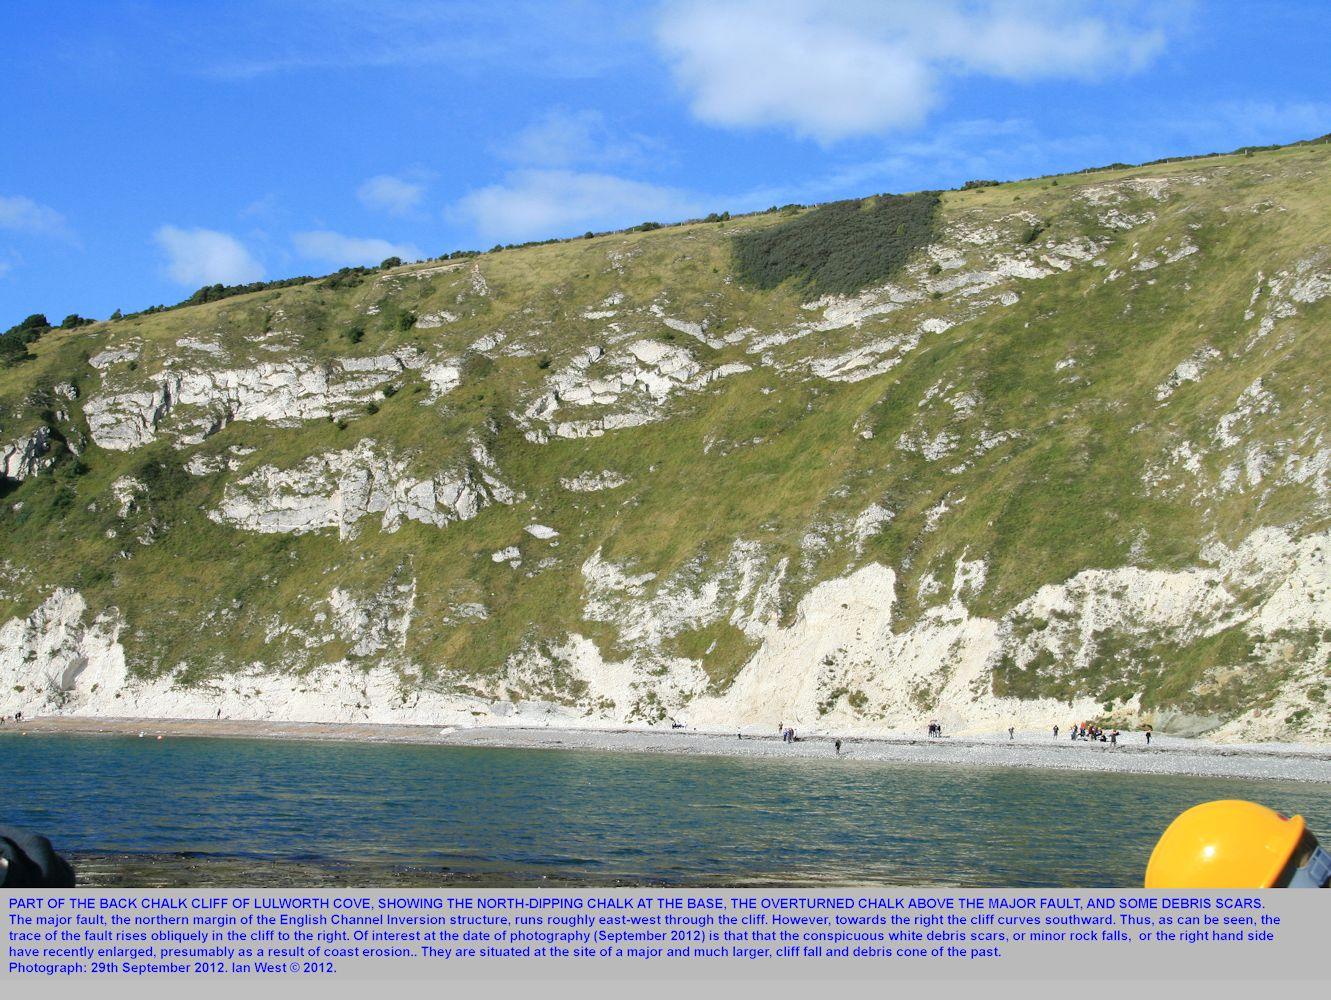 A general view of the back Chalk cliff of Lulworth Cove, Dorset, seen from the shore near Pepler's Point and the Eastern Horn, 29th September 2012, showing the major east-west fault